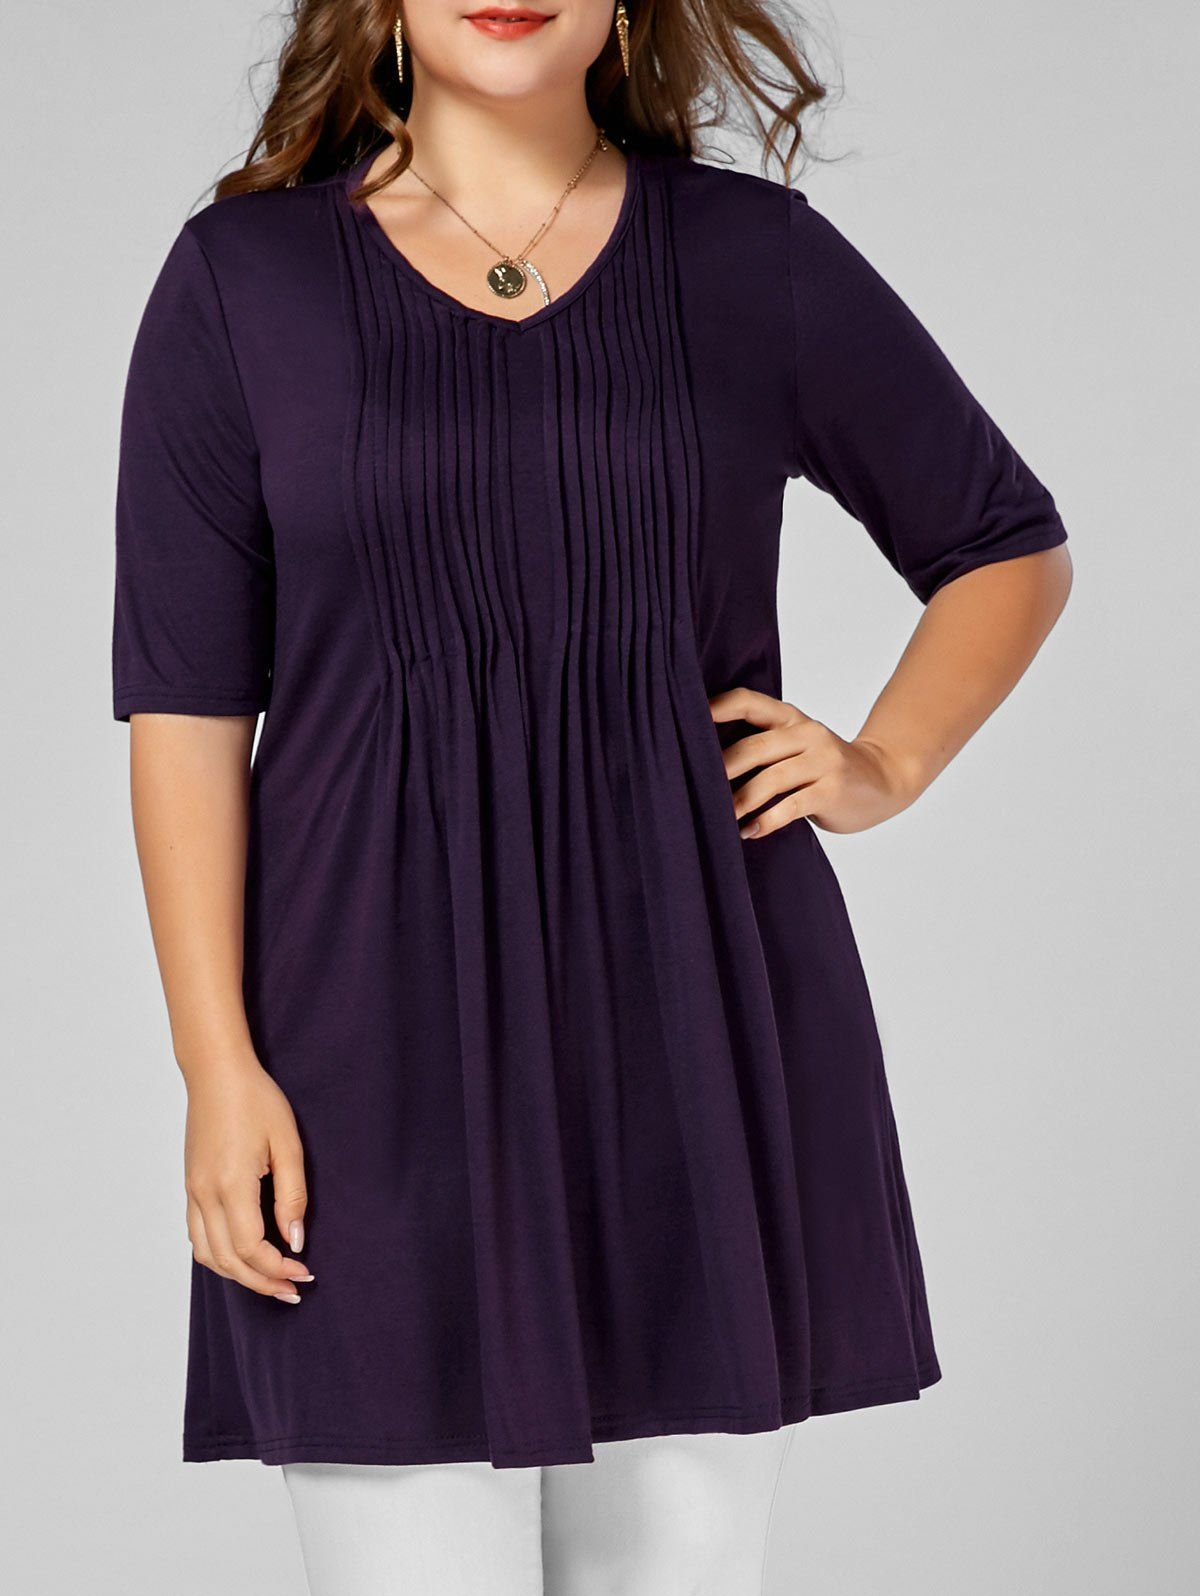 dcdac53d2a9 Plus Size V Neck Tunic Tee